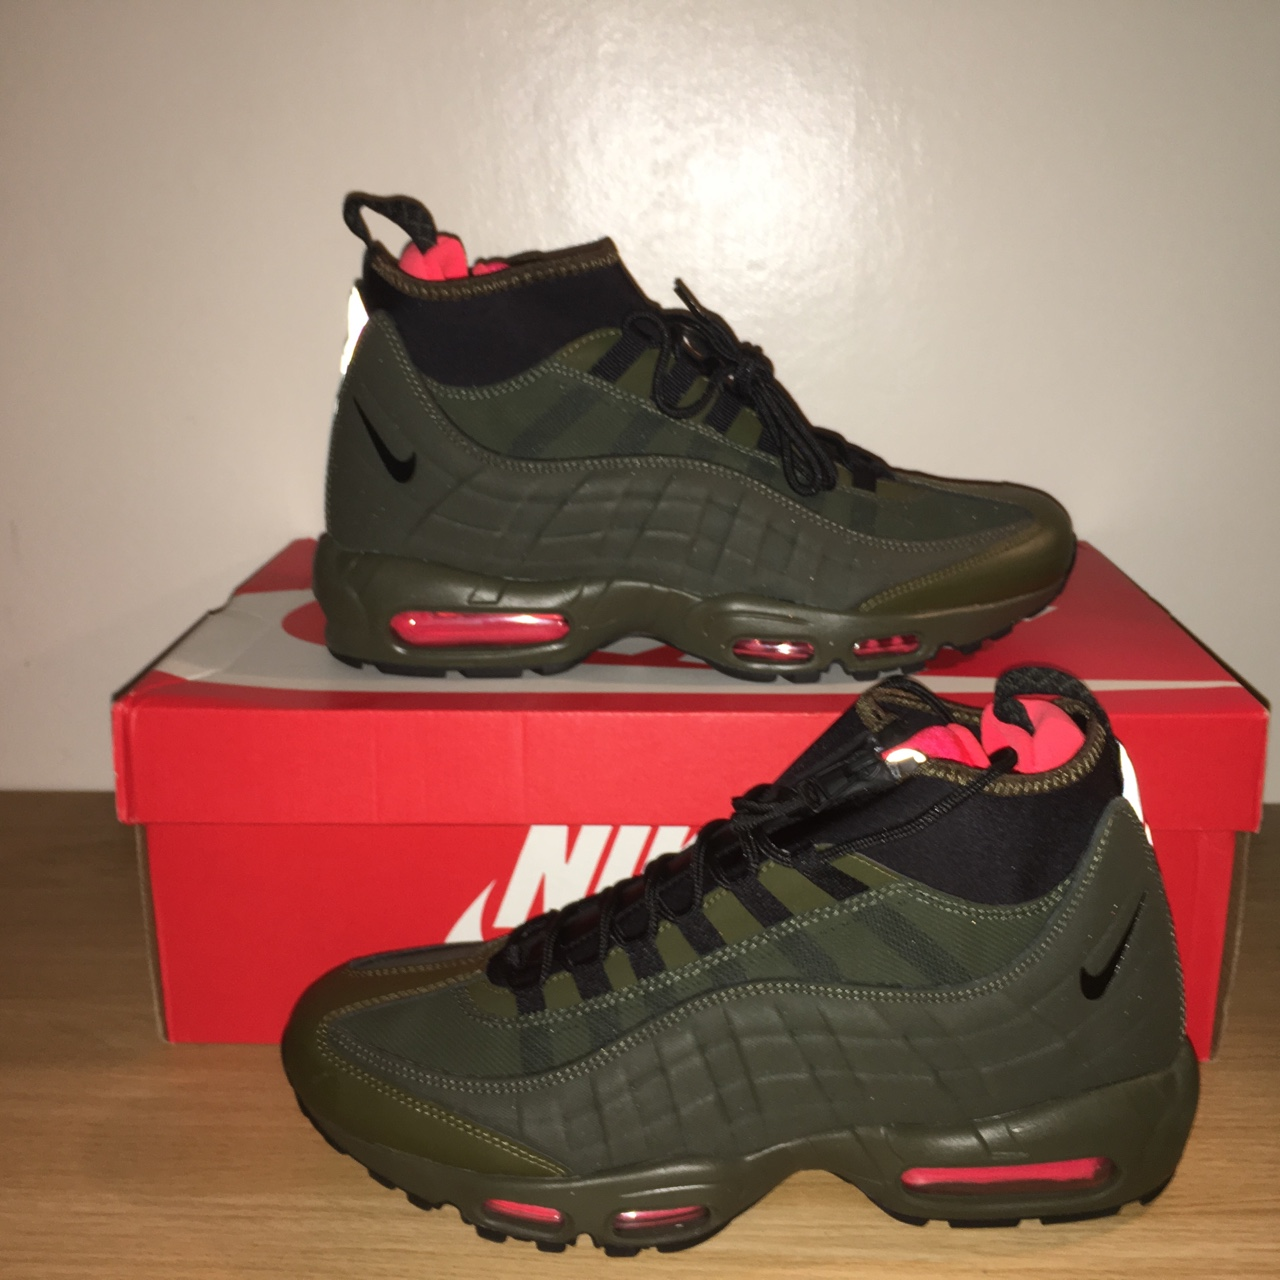 separation shoes f6731 41146 Nike Air max 95 sneakerboot olive green dark Loden... - Depop